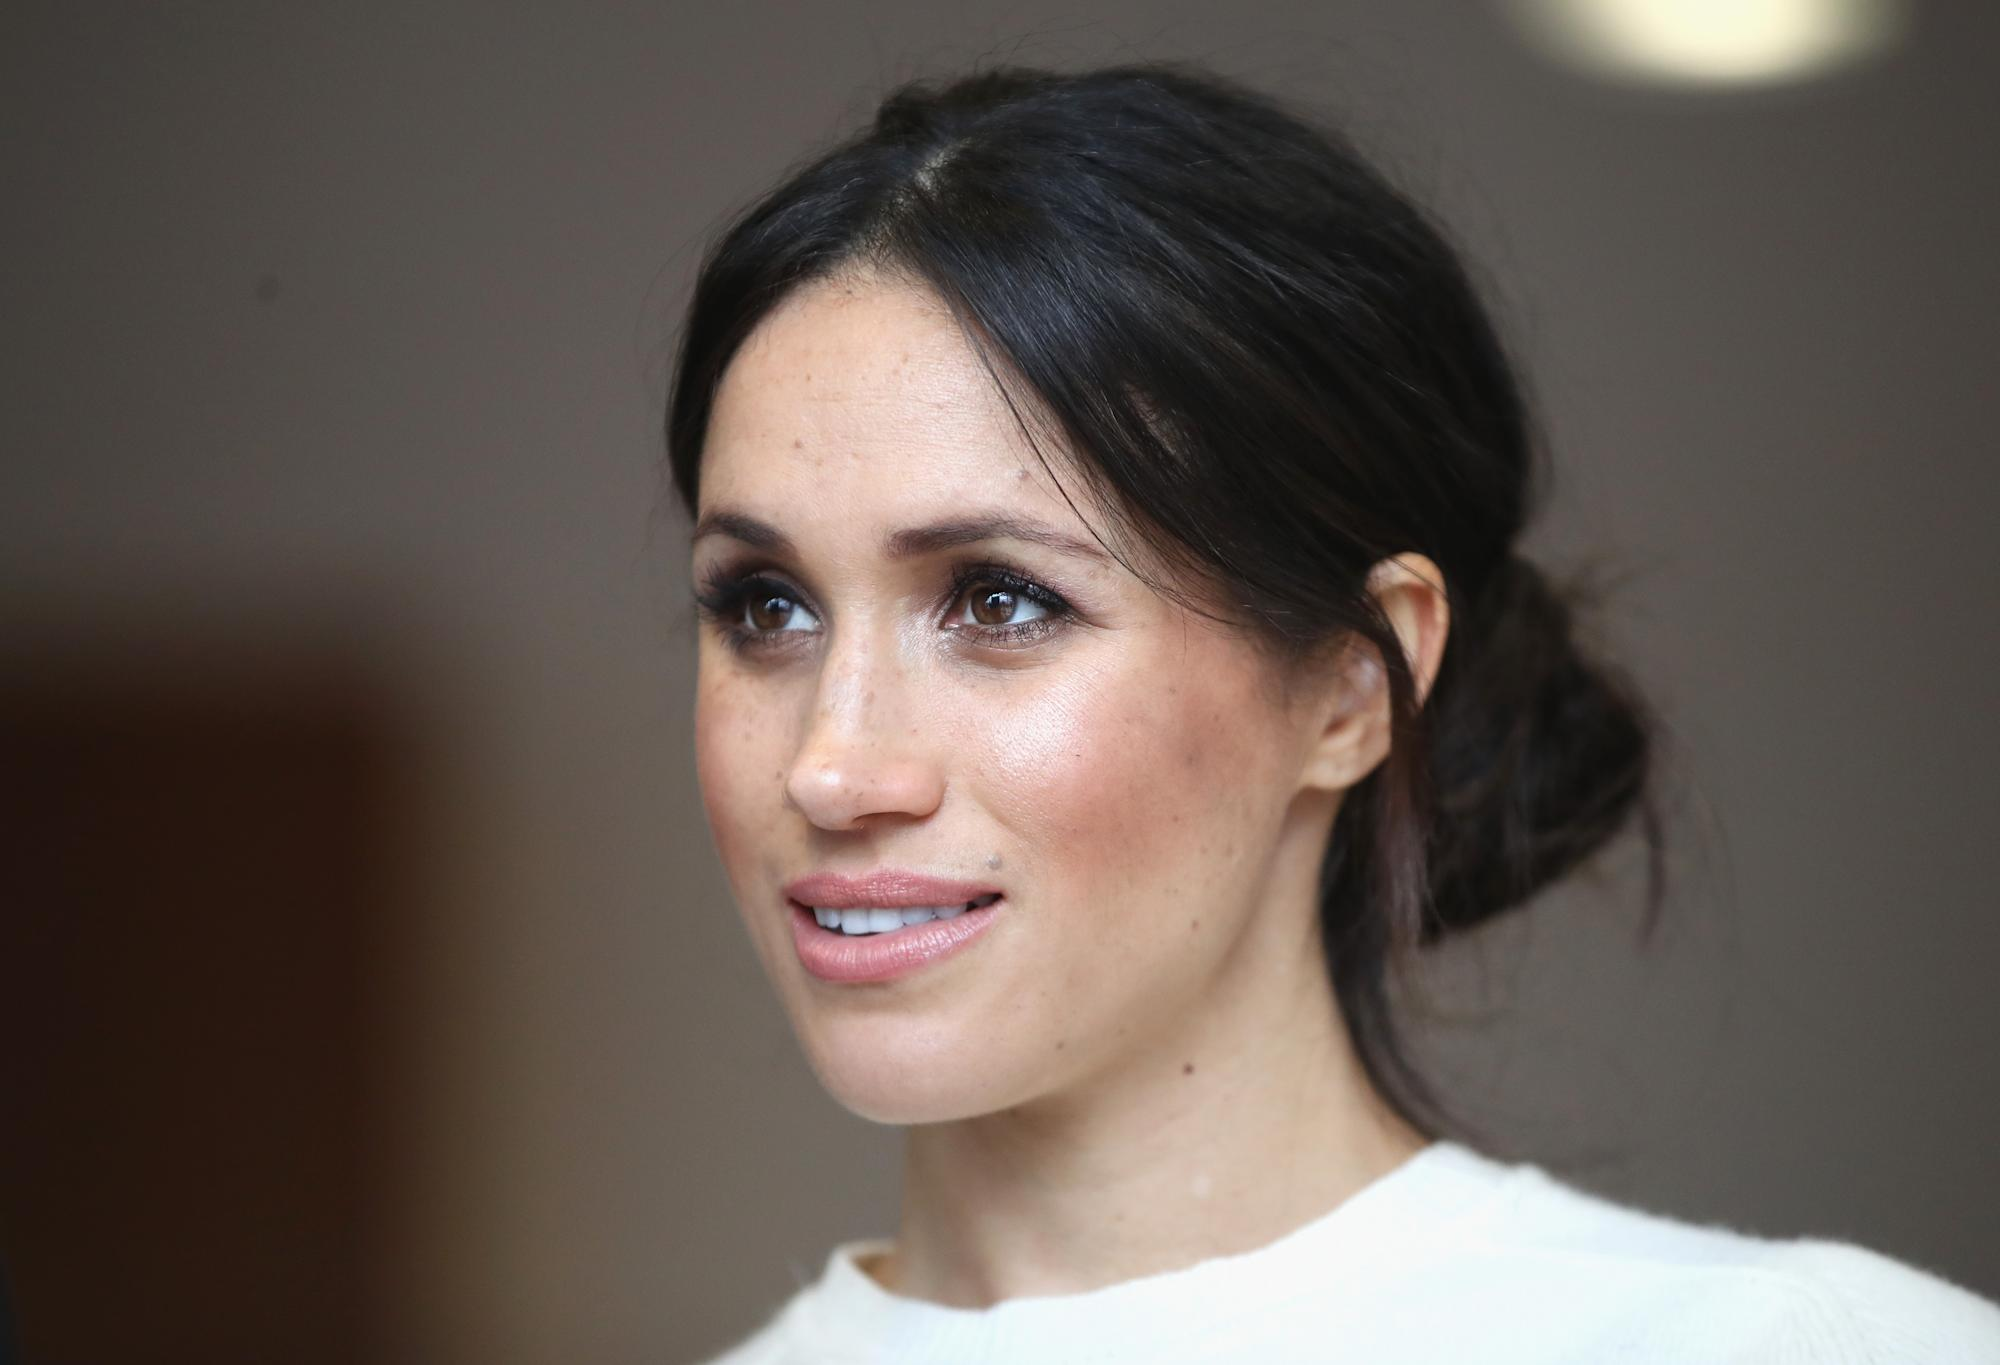 Buckingham Palace to investigate claims Meghan bullied royal staff - 'We are very concerned'